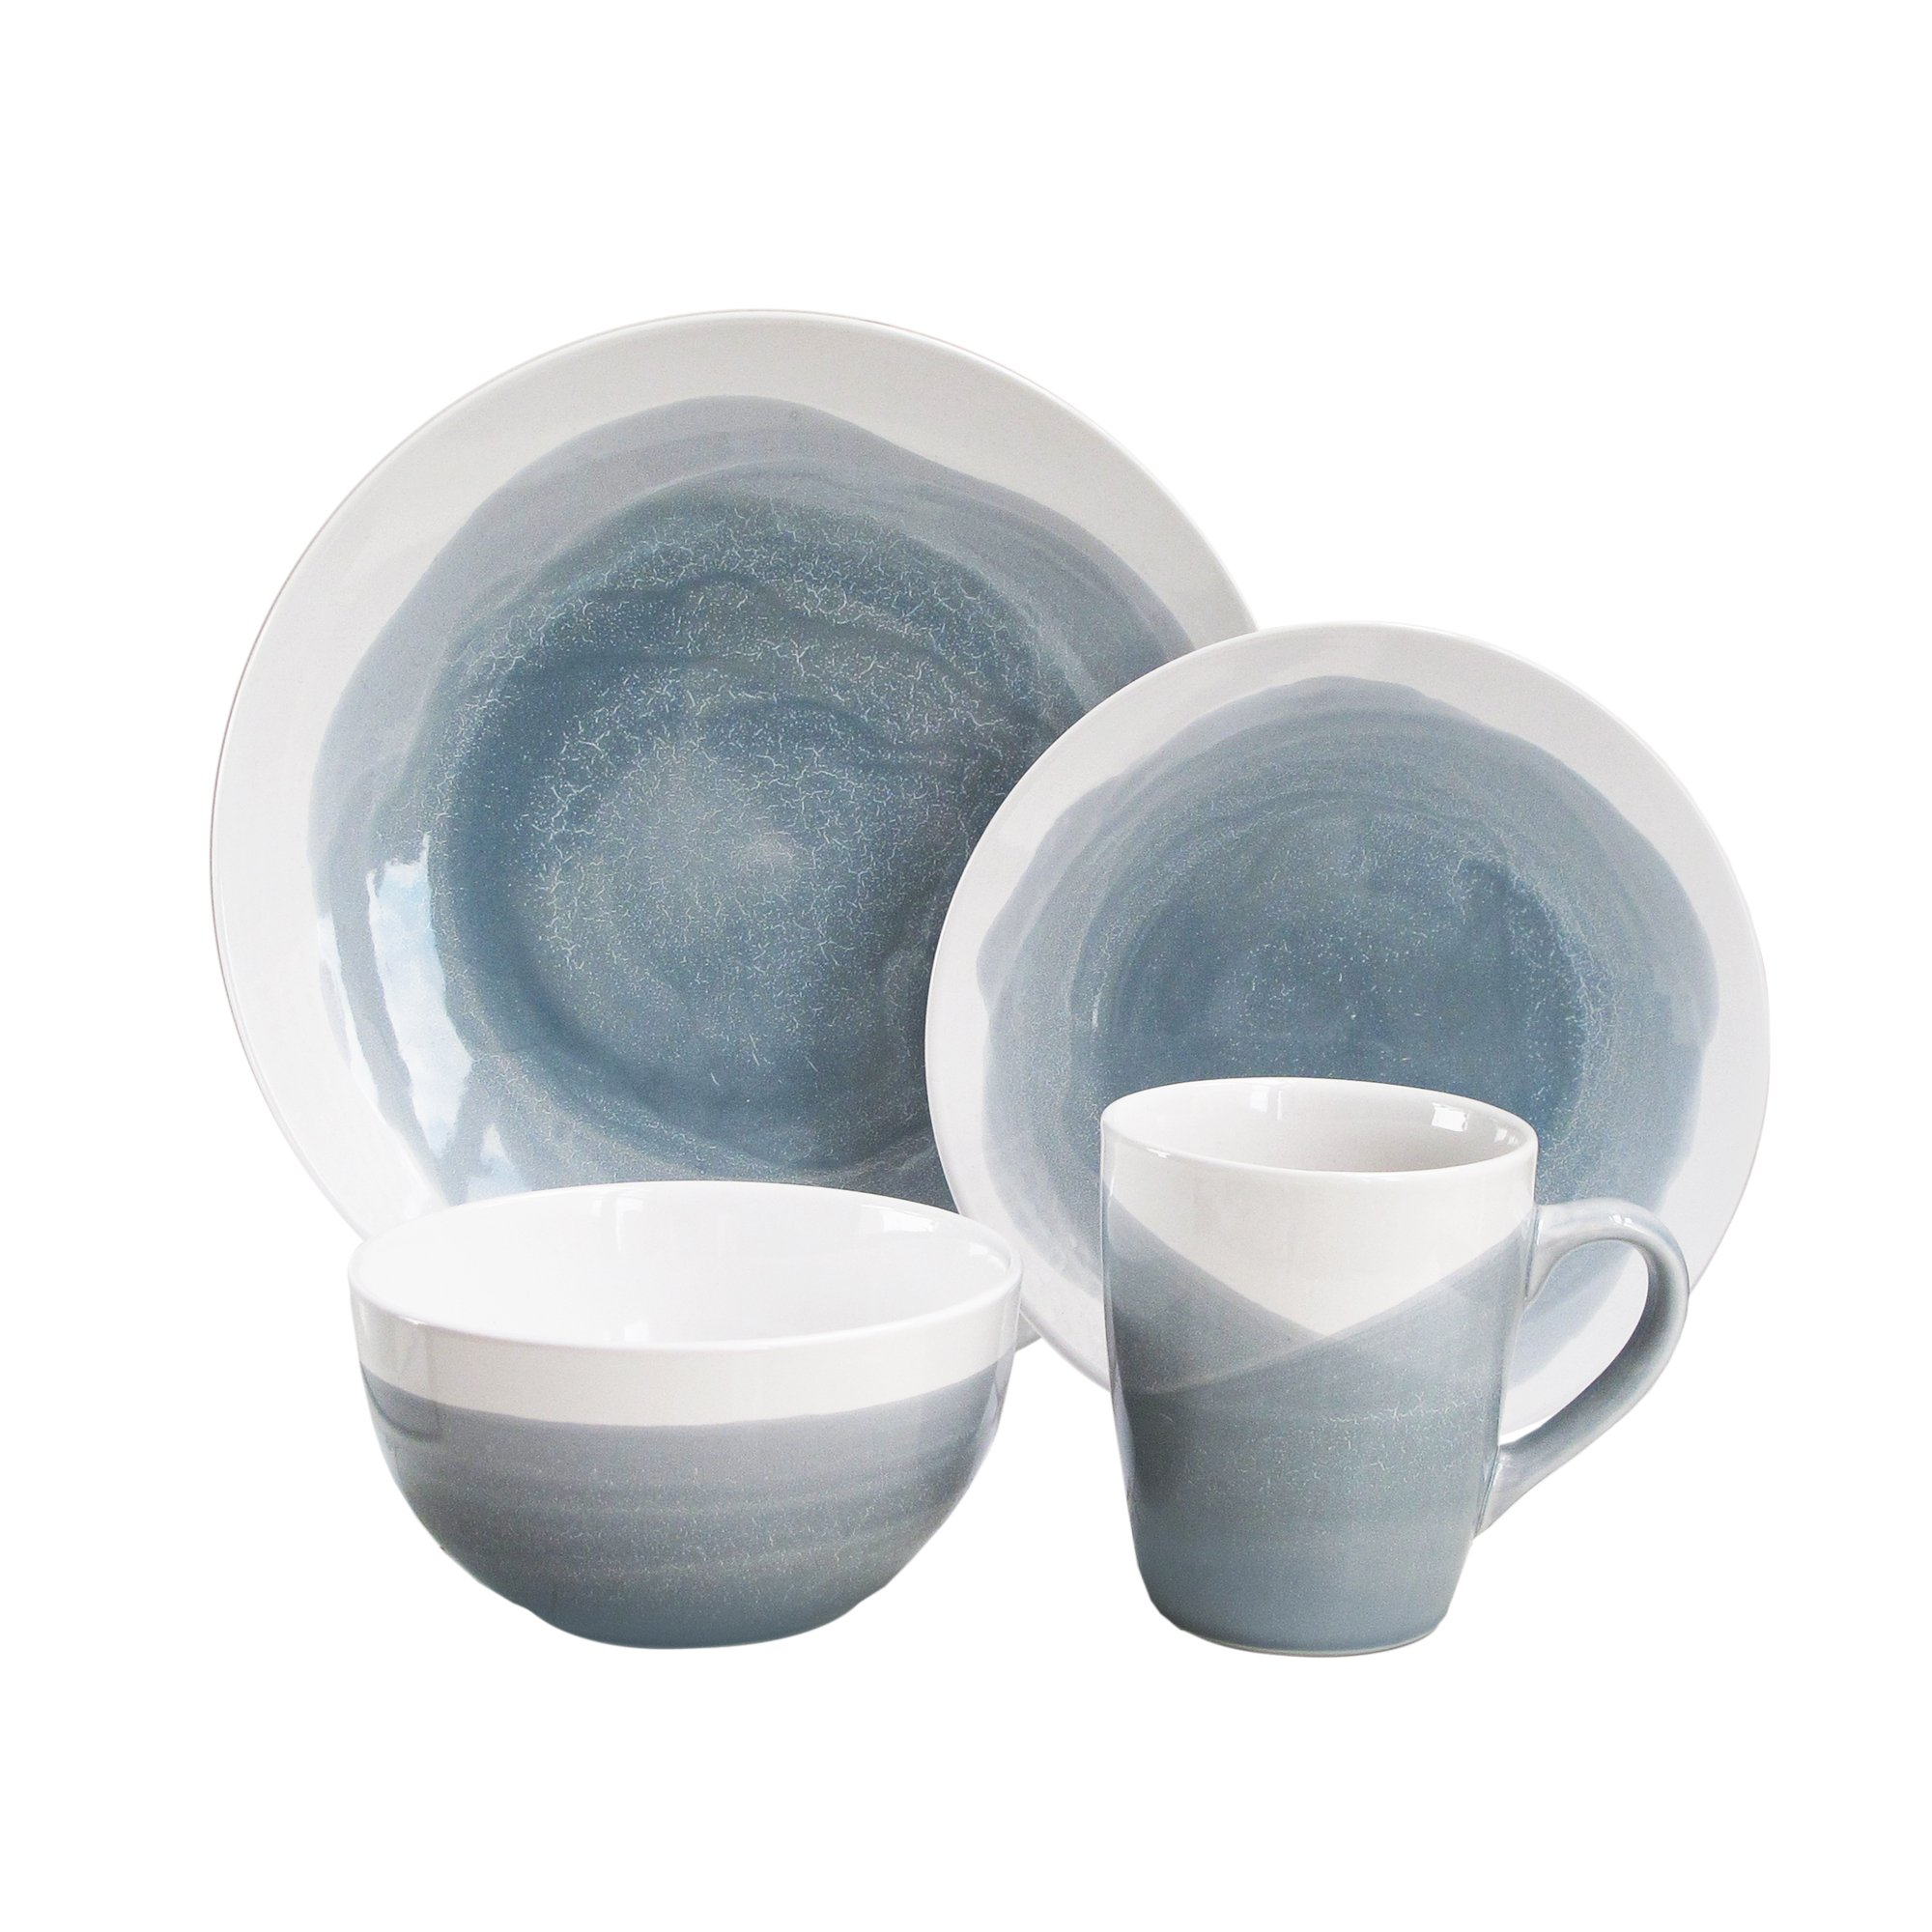 16 Piece Dinnerware Set for 4 Tableware Dishes Stoneware Gray/Blue ...